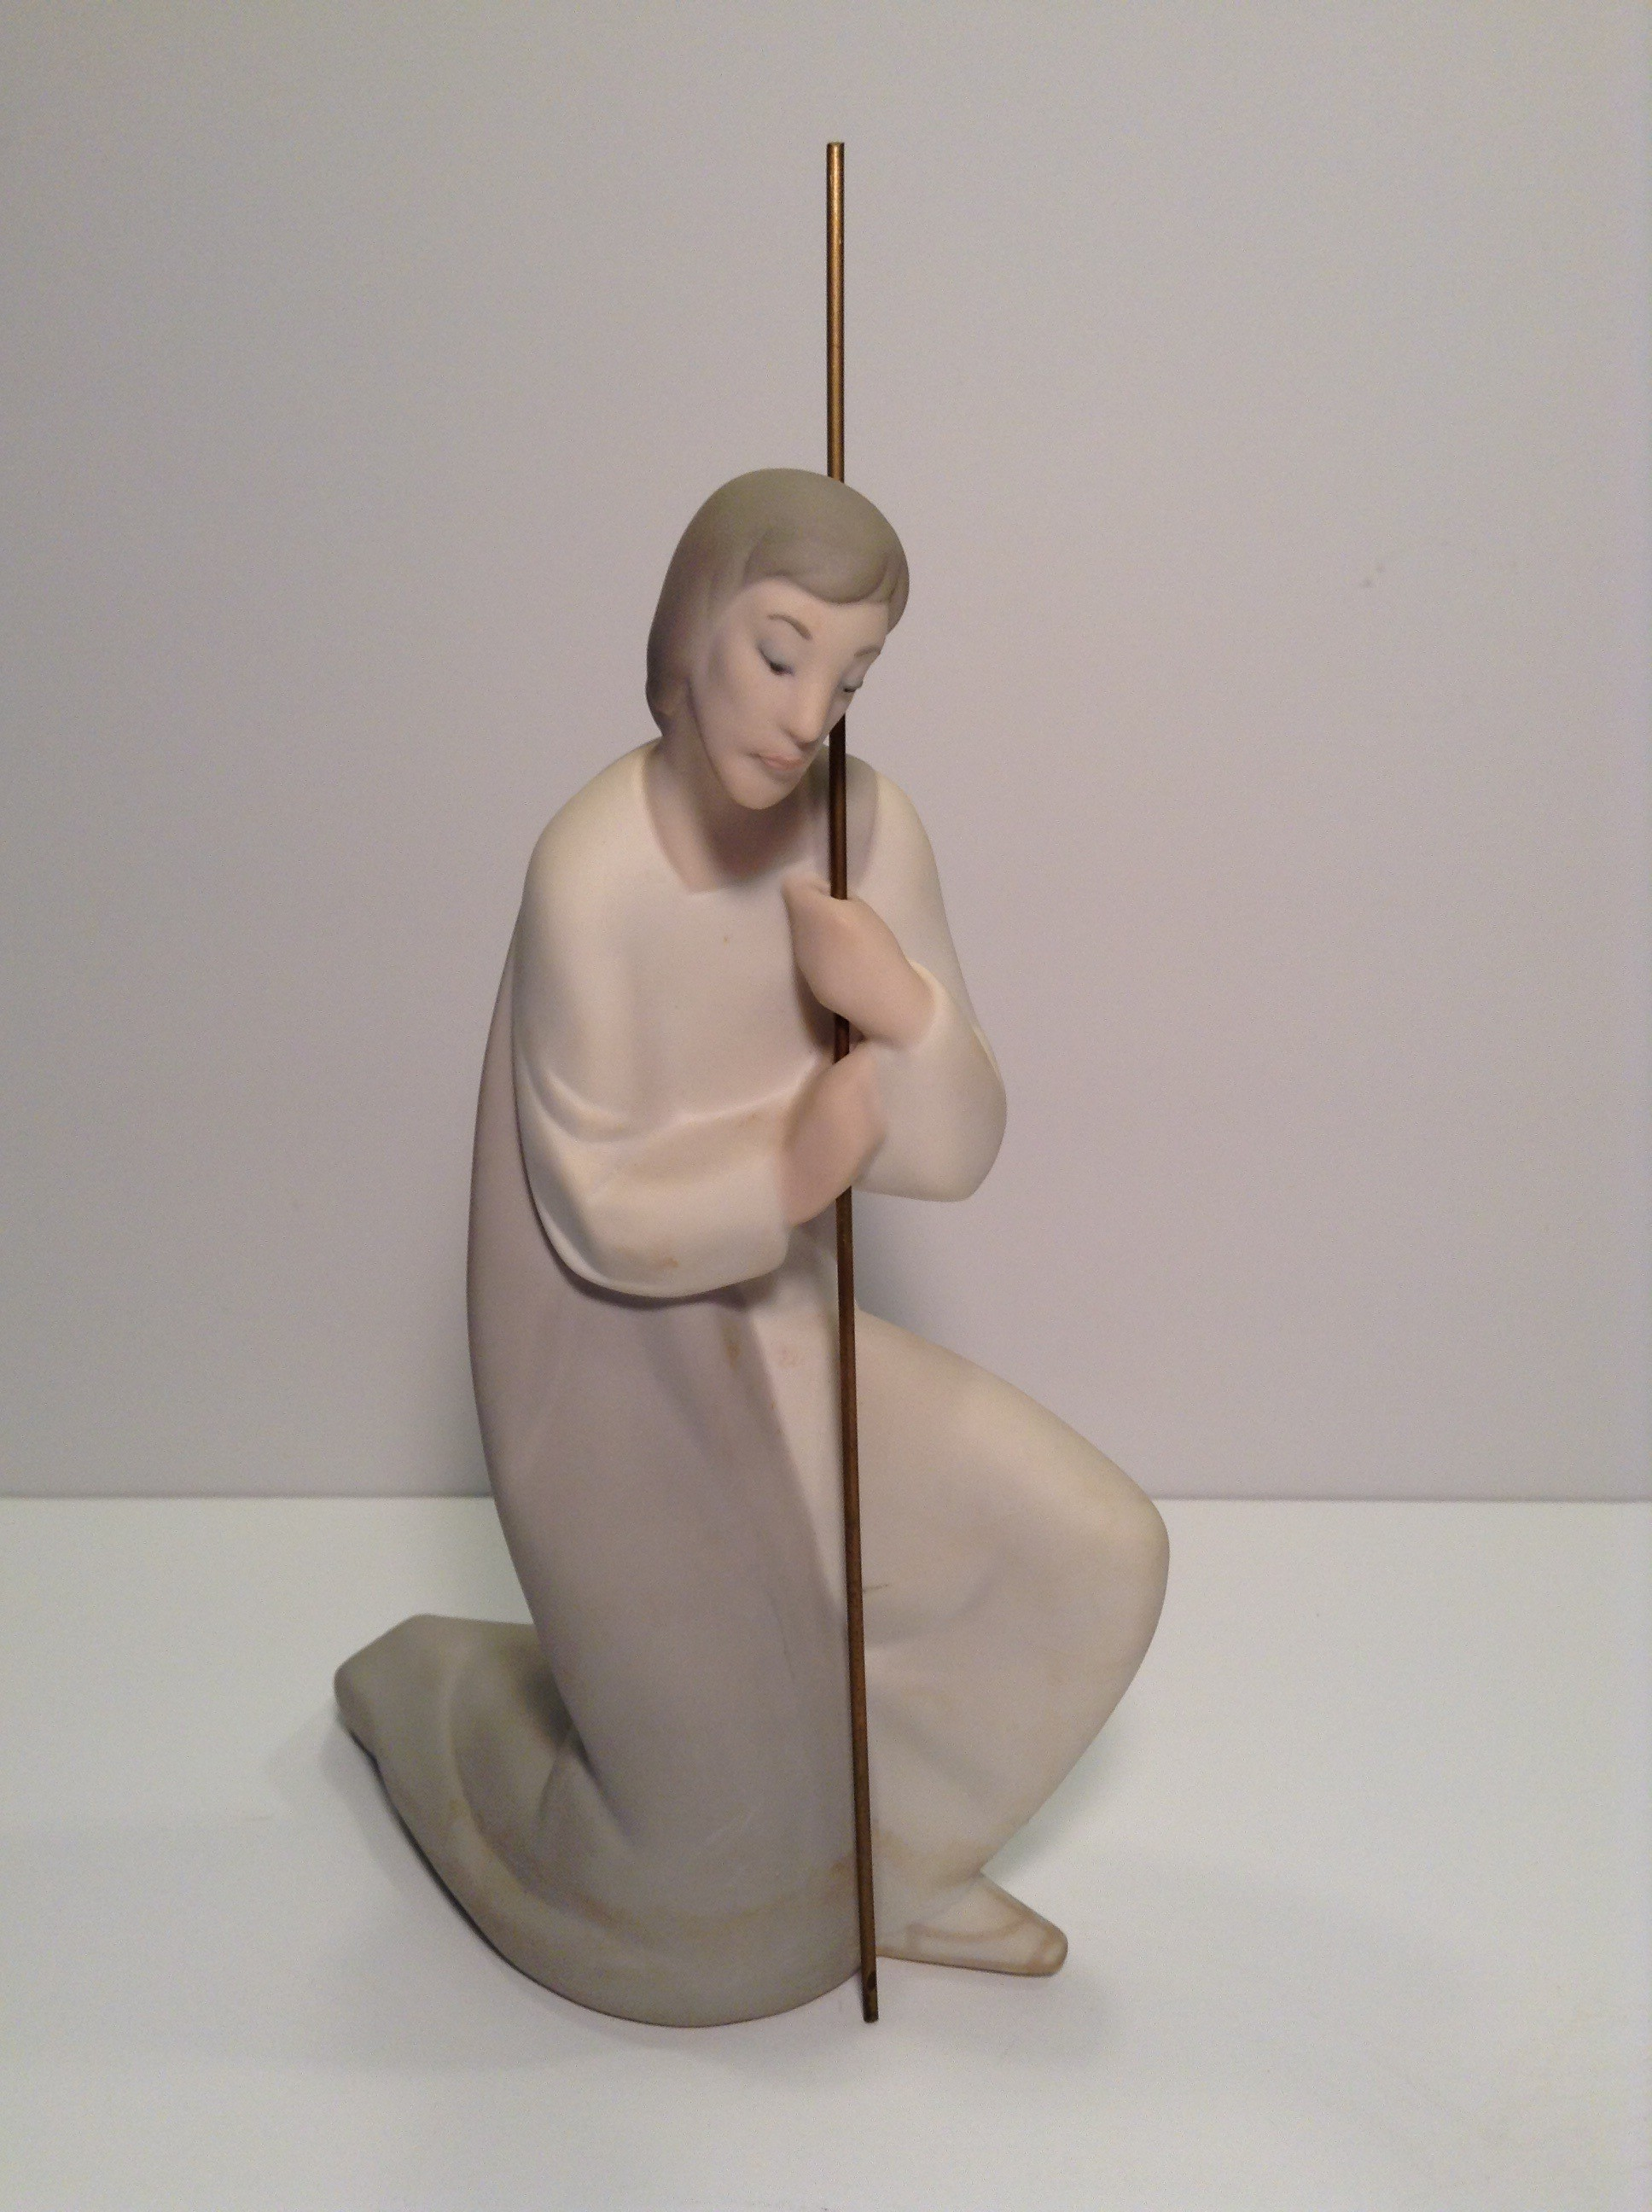 LLADRO SAINT JOSEPH #1453 - Matte Finish